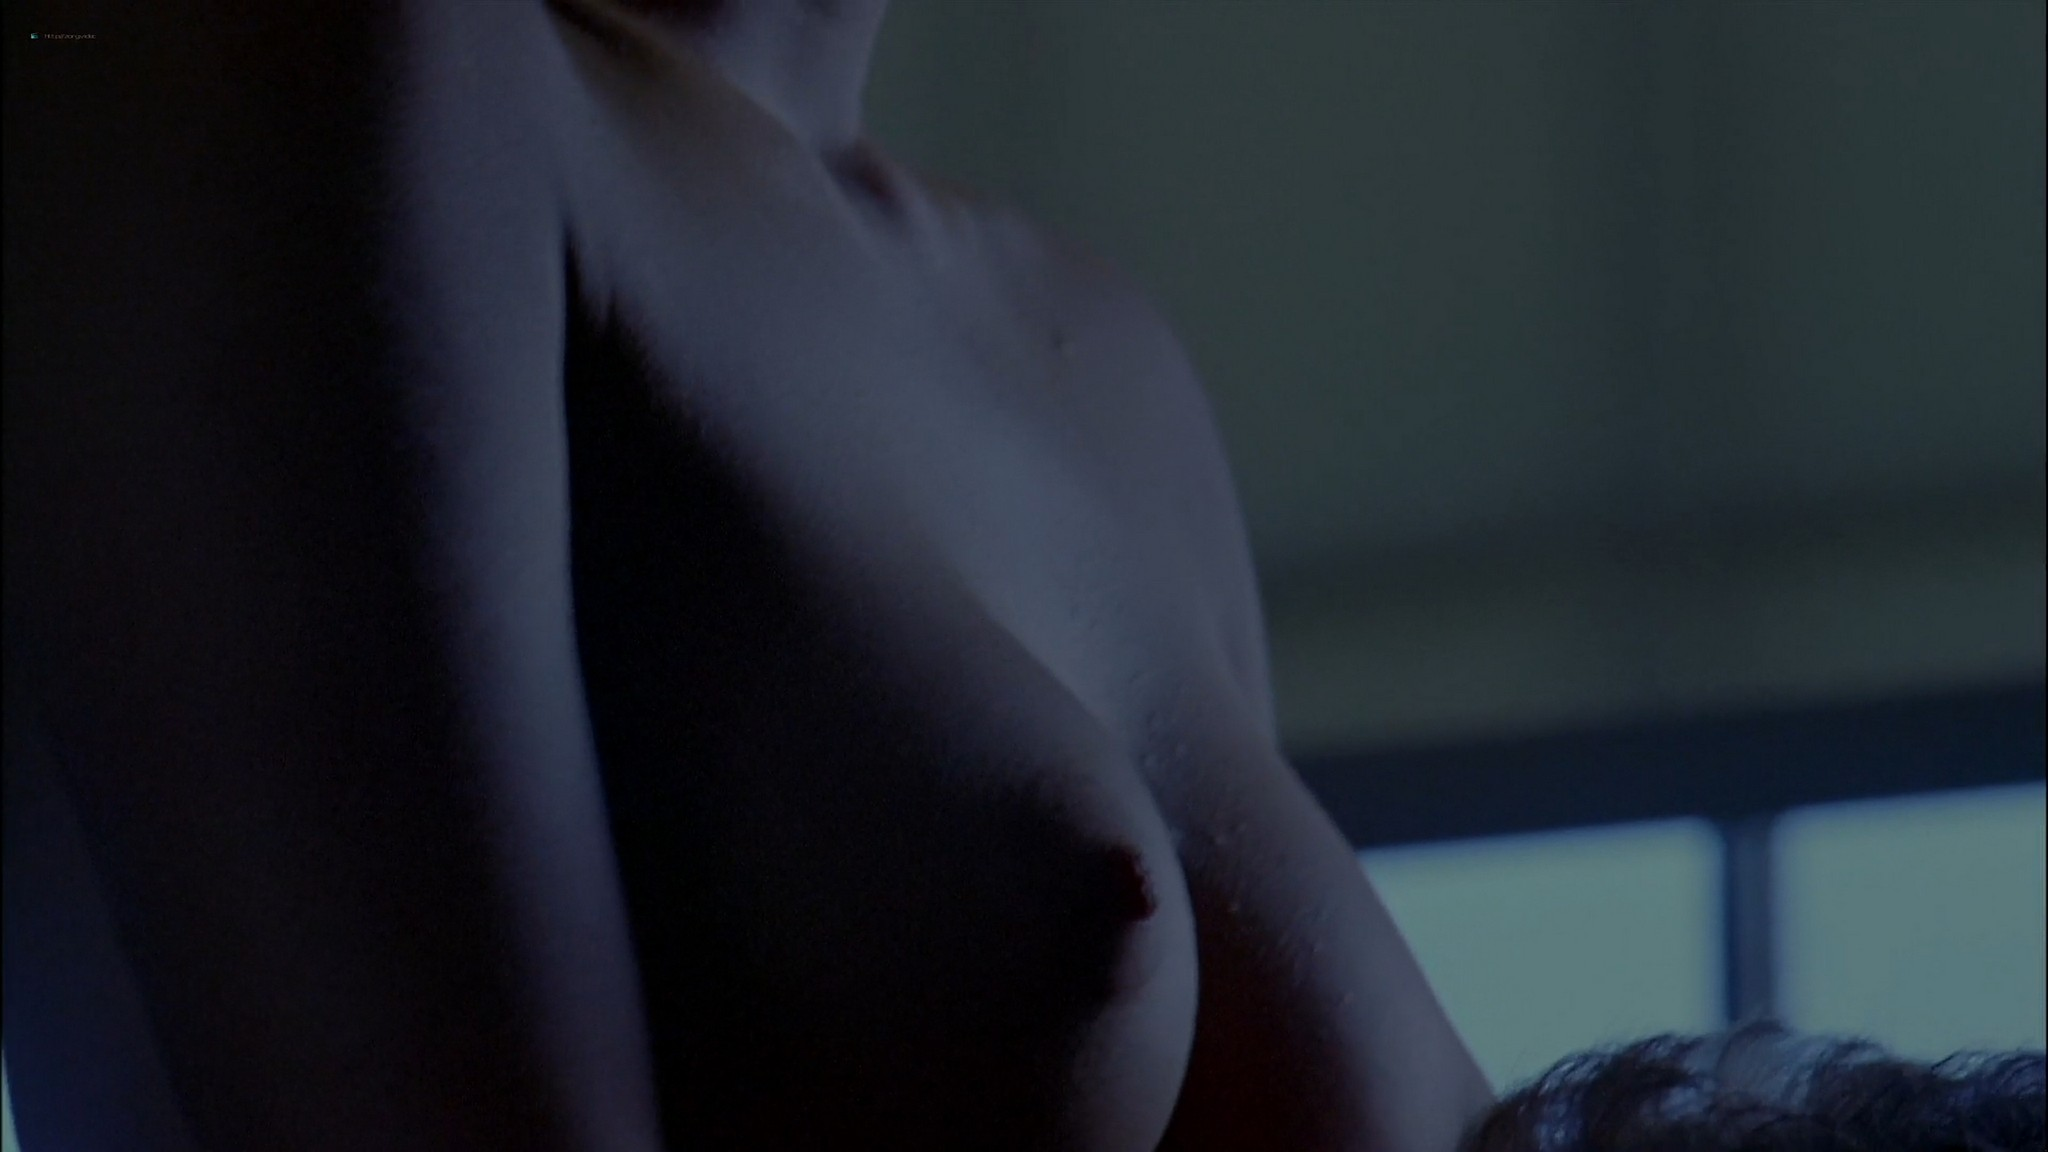 Susan Ward nude Lori Heuring Erinn Bartlett Laurie Fortier hot The In Crowd 2000 1080p Web 14